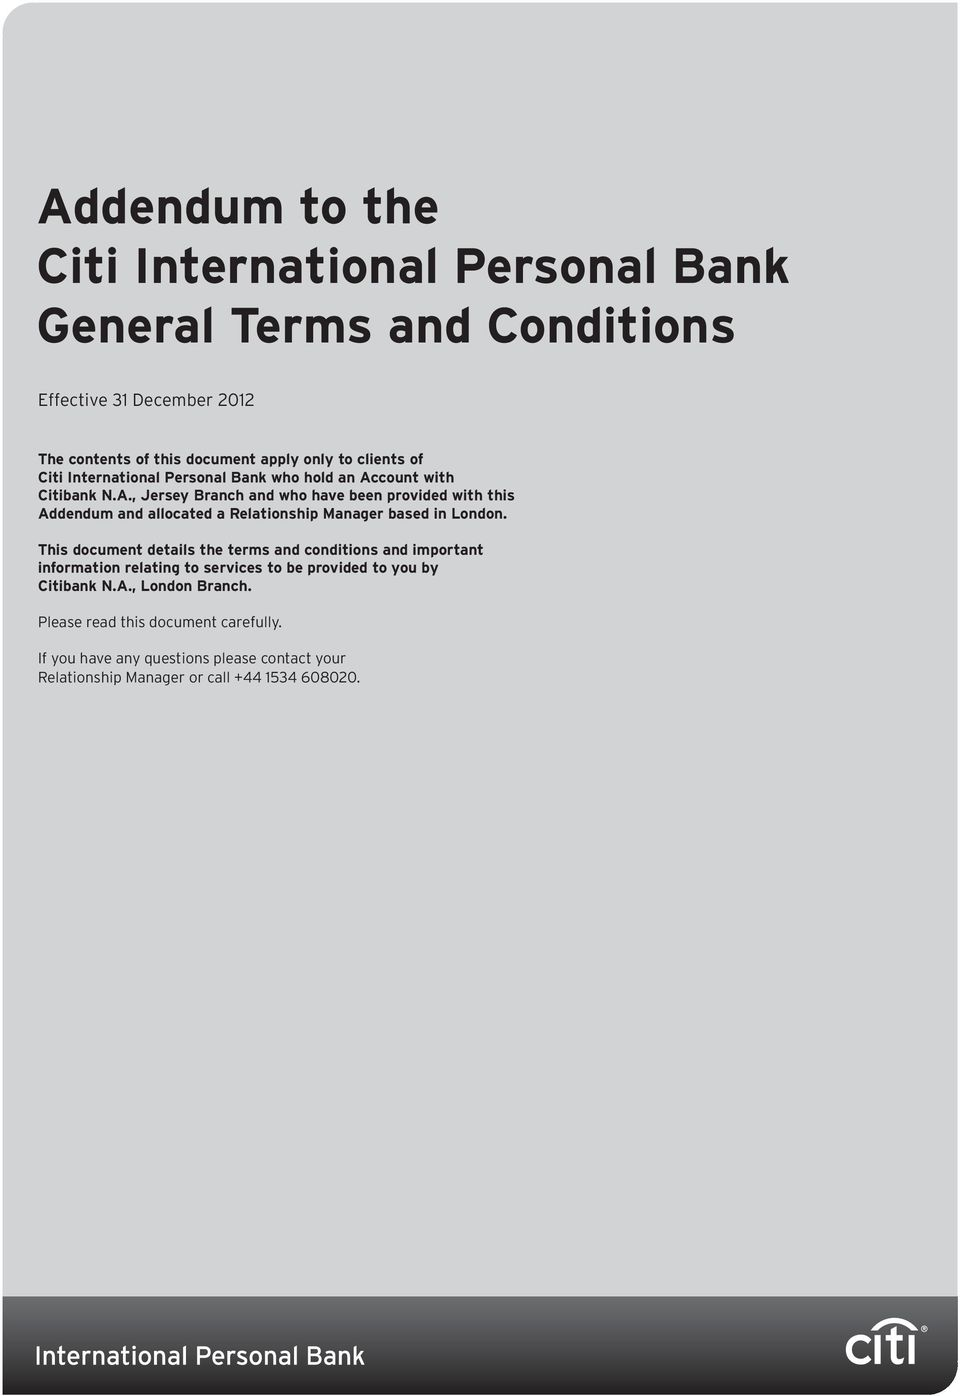 count with Citibank N.A., Jersey Branch and who have been provided with this Addendum and allocated a Relationship Manager based in London.